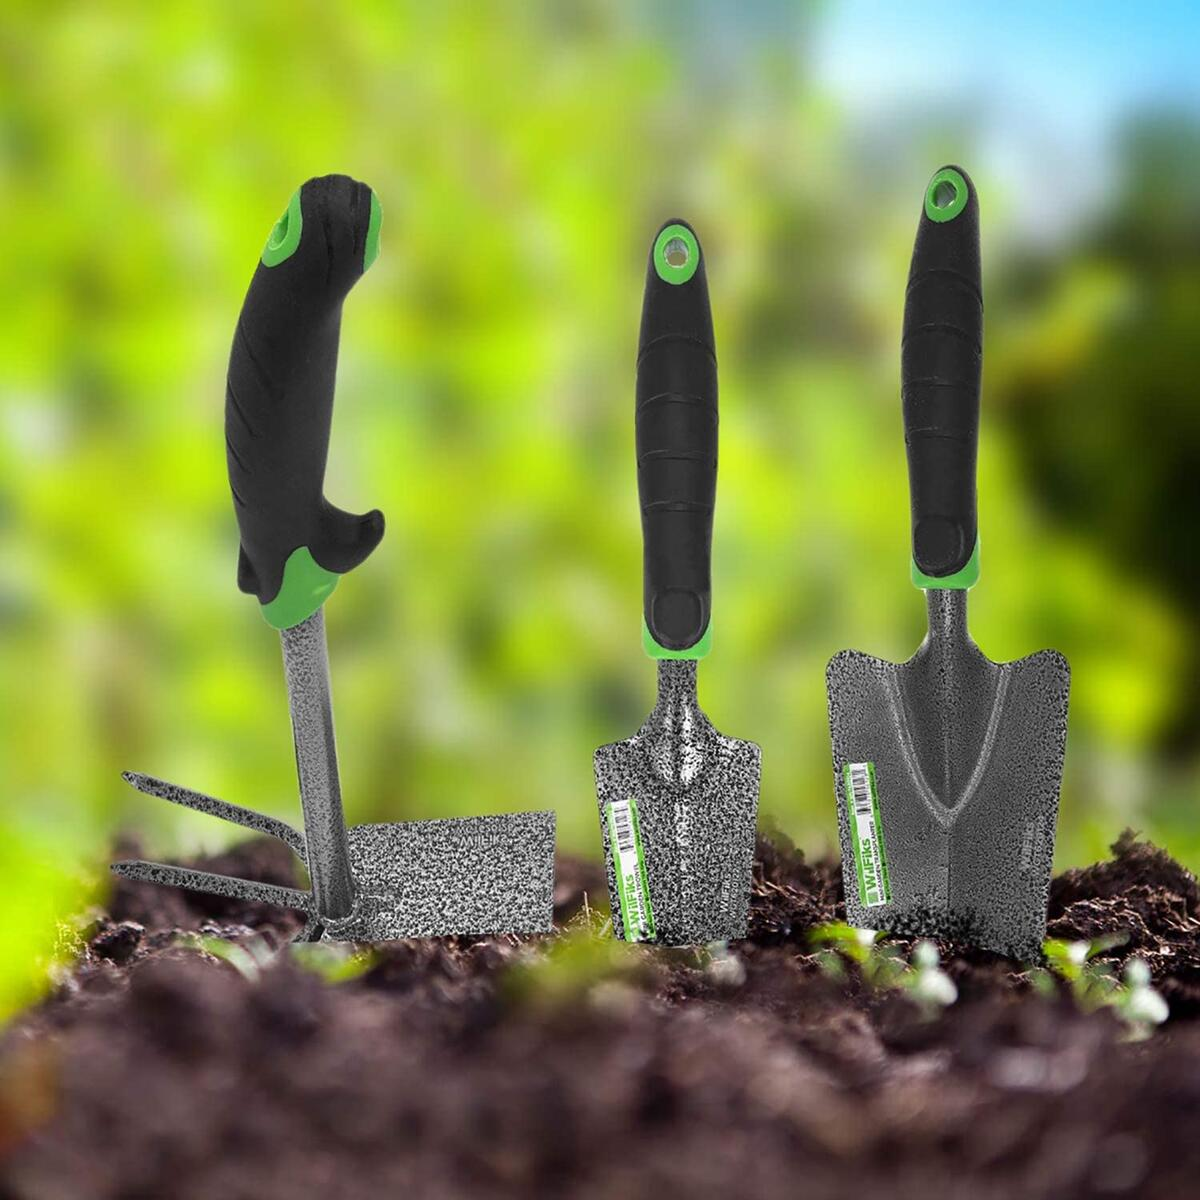 Garden Tool Set, 3 Piece Heavy Duty Hand Tools, The Gardening Kit Includes A Hand Trowel, Transplanter and A Hoe and Cultivator Combo, Bend Proof Garden Work Tools with an Ergonomic Handle